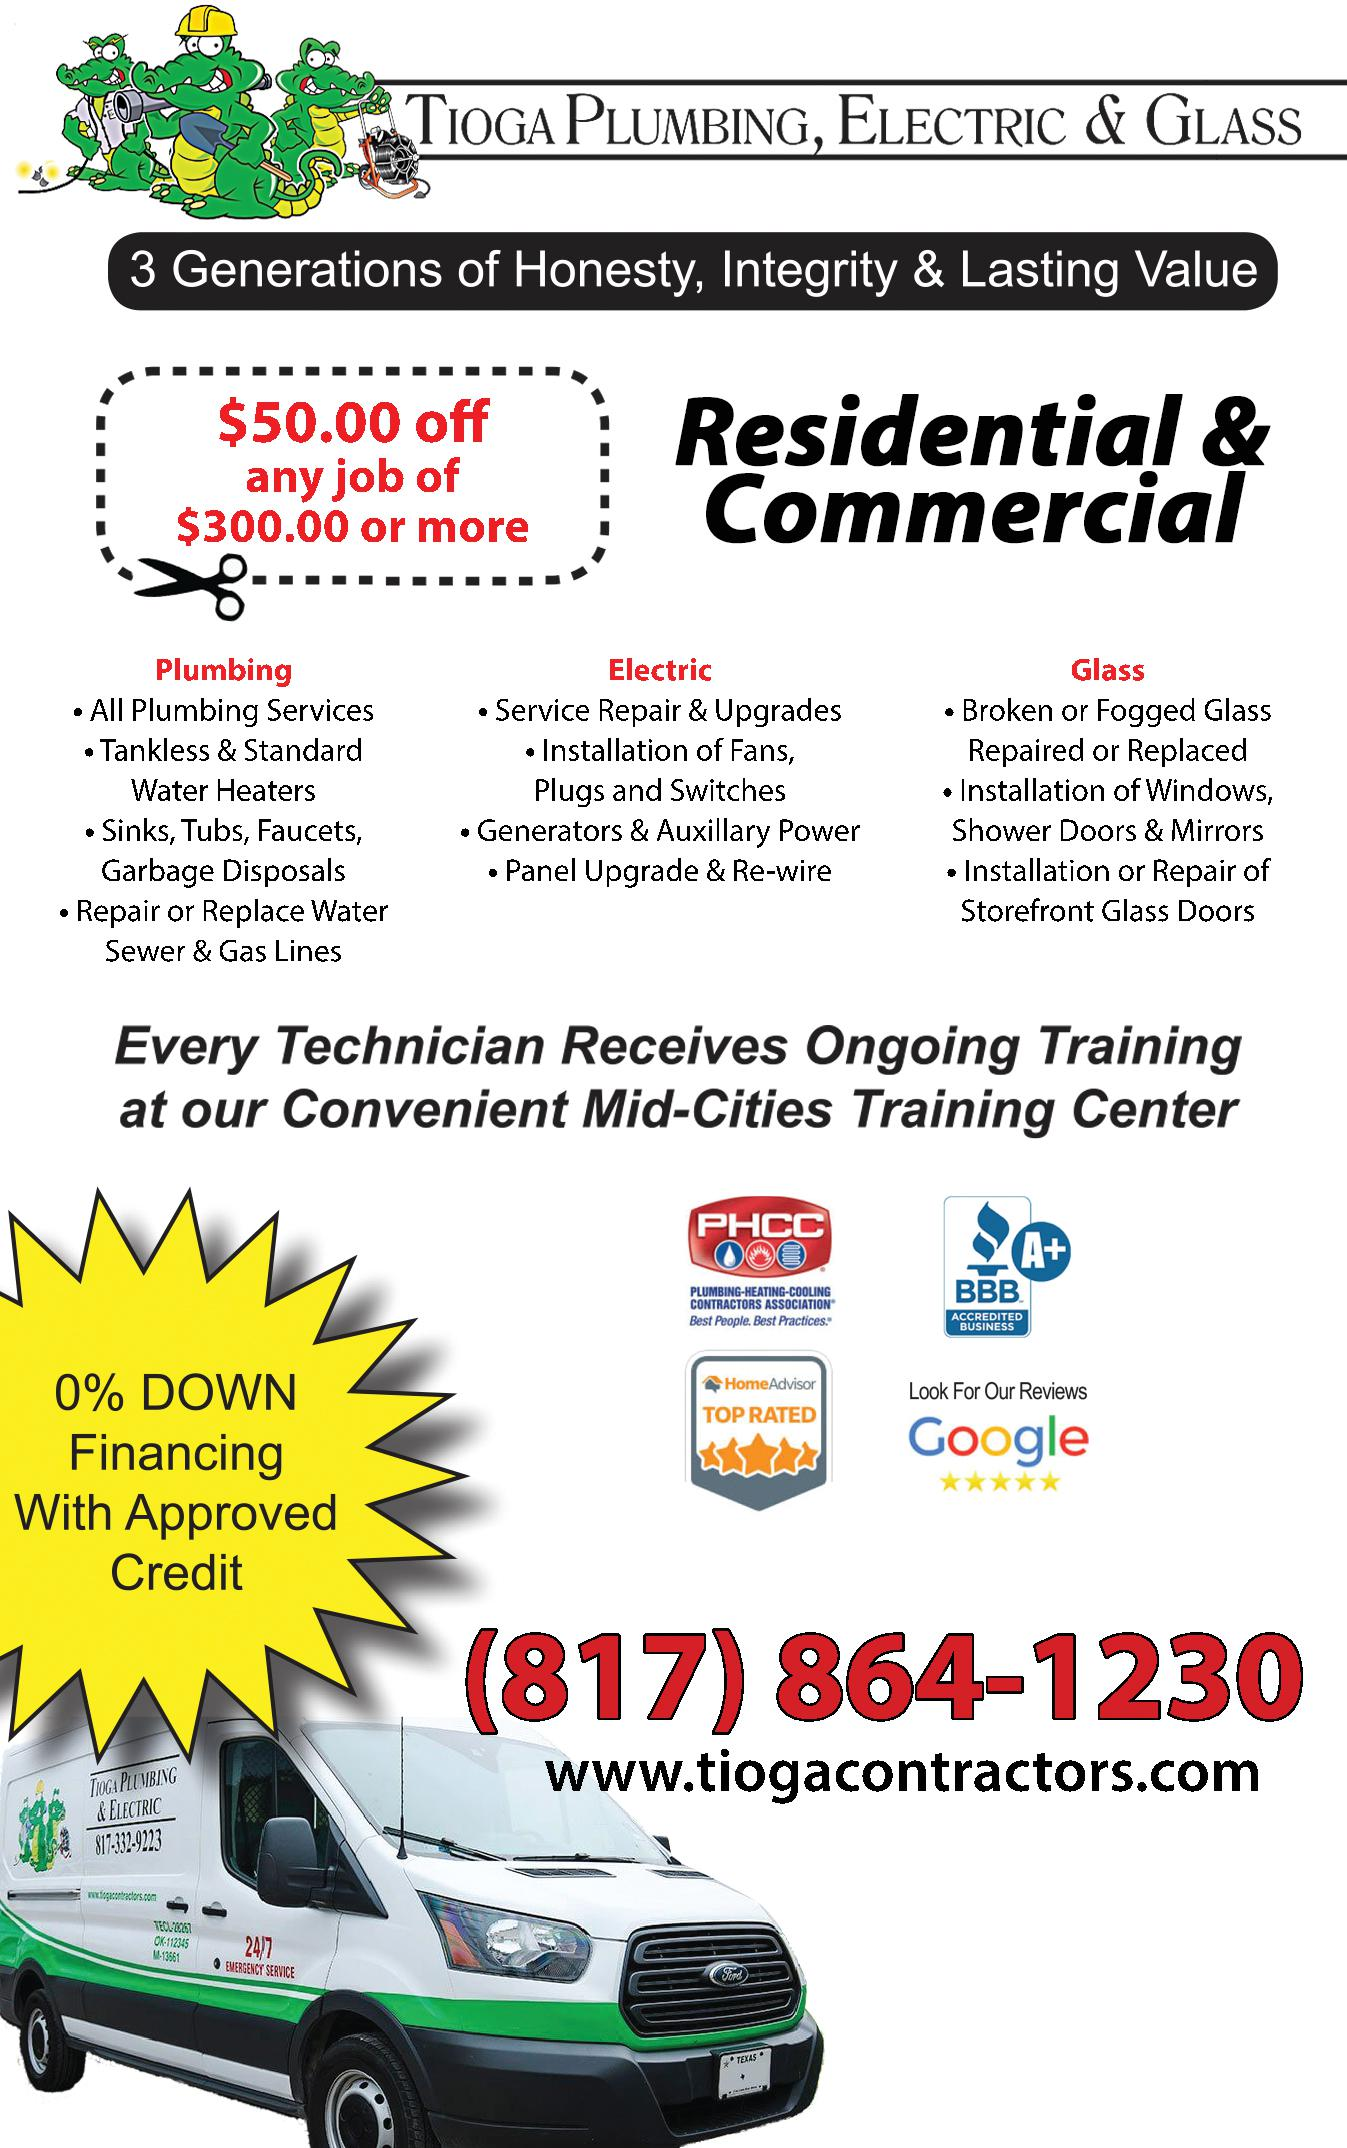 Tioga Plumbing, Electric & Glass